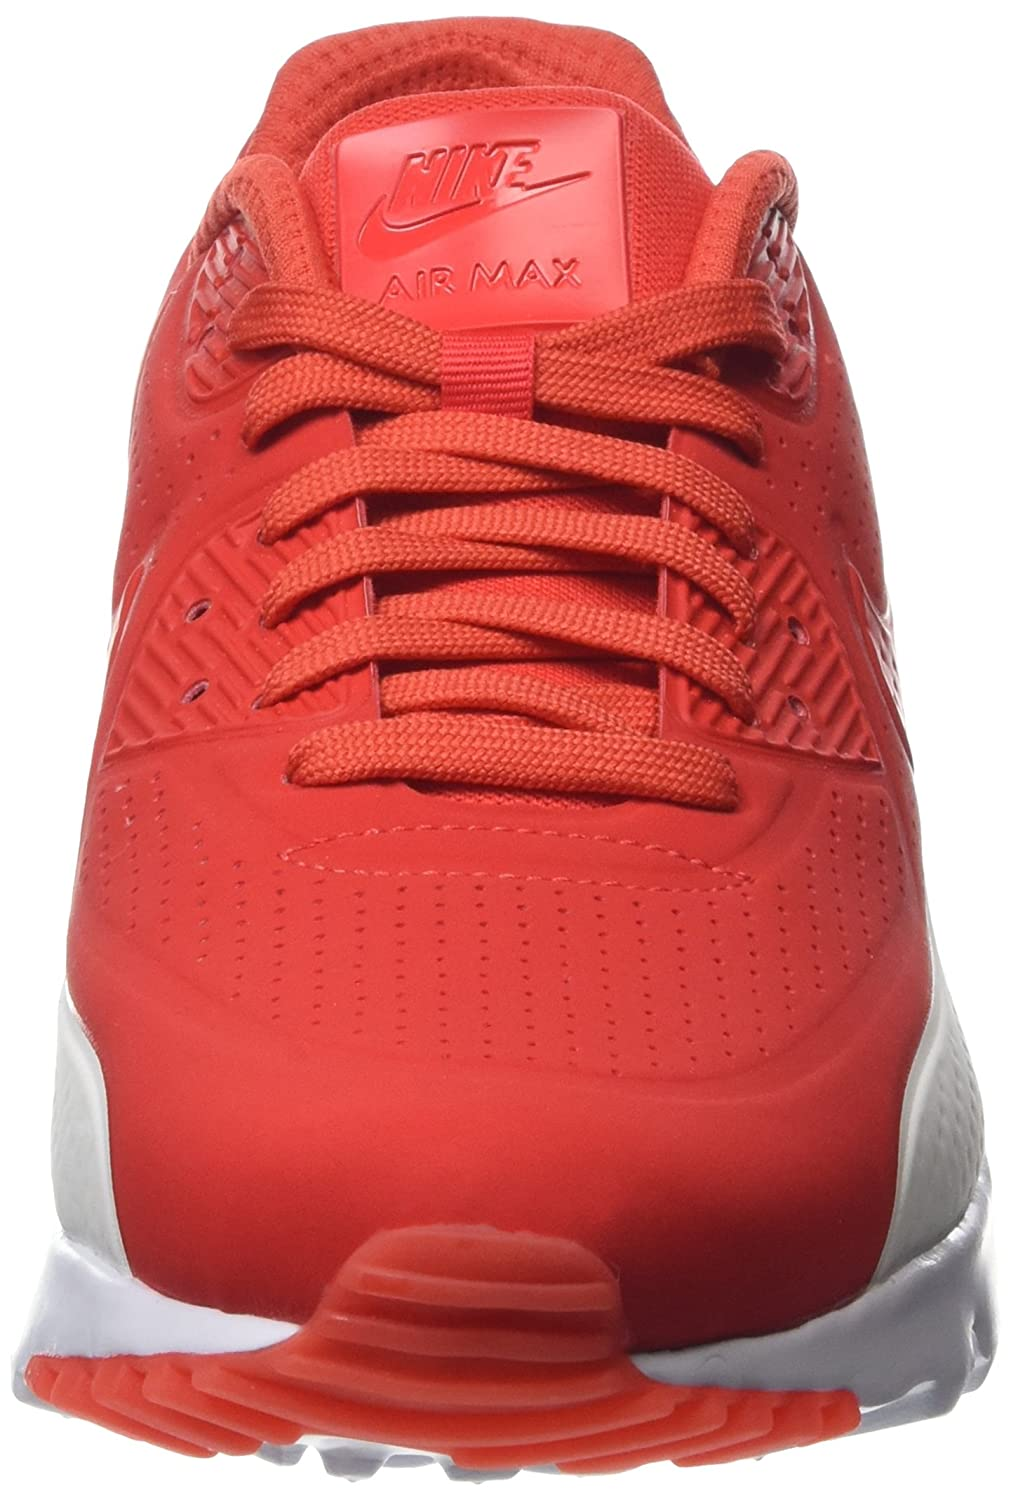 Nike Air Max 90 Ultra Moire red white 819477 611 (10.5)